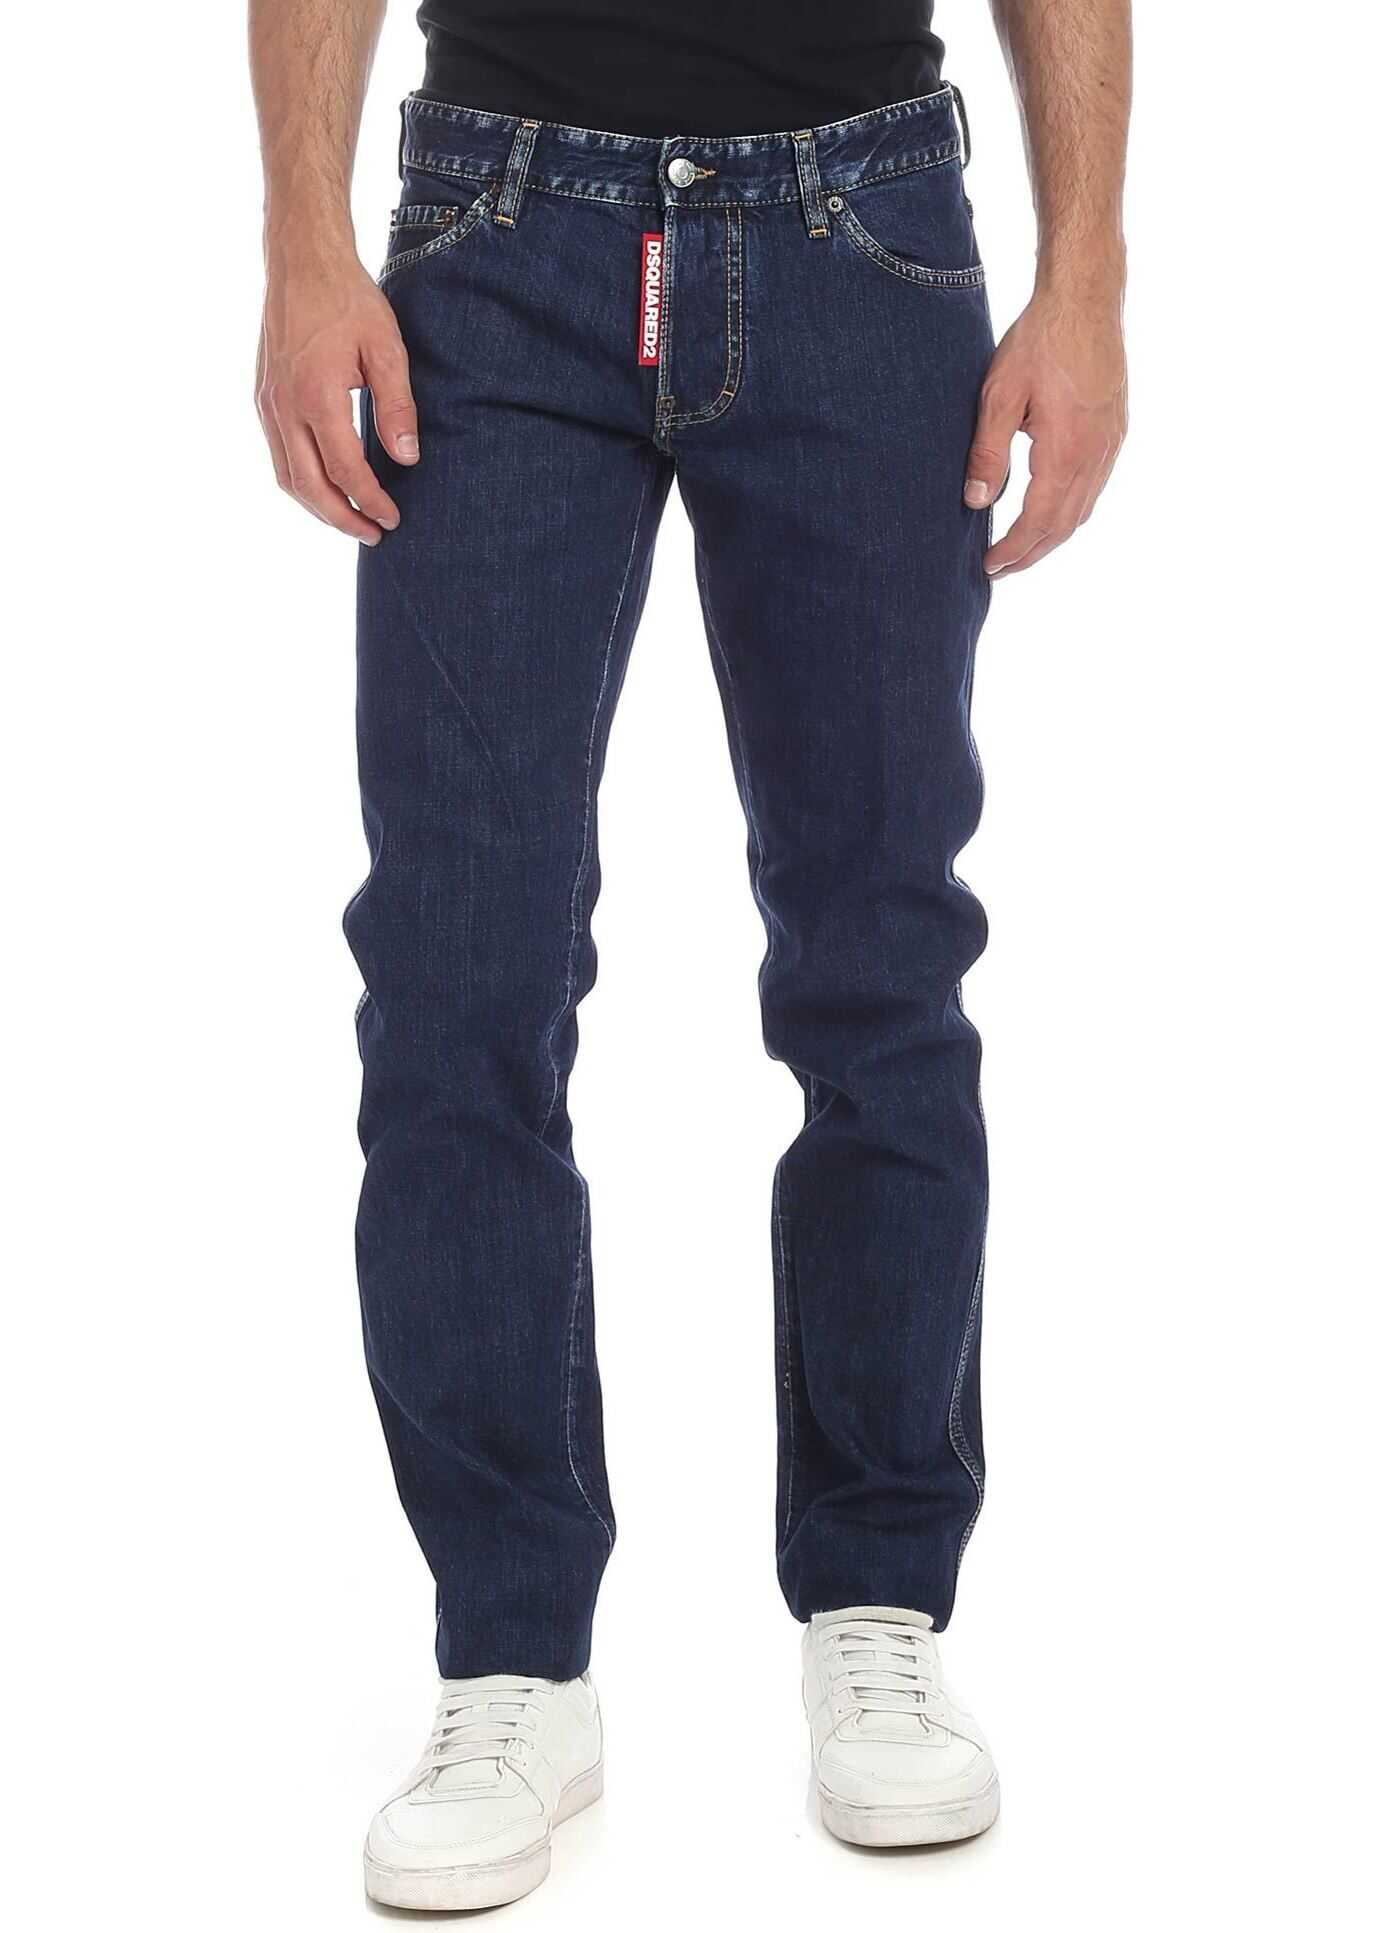 DSQUARED2 Slim Jean Jeans In Blue With Vintage Details Blue